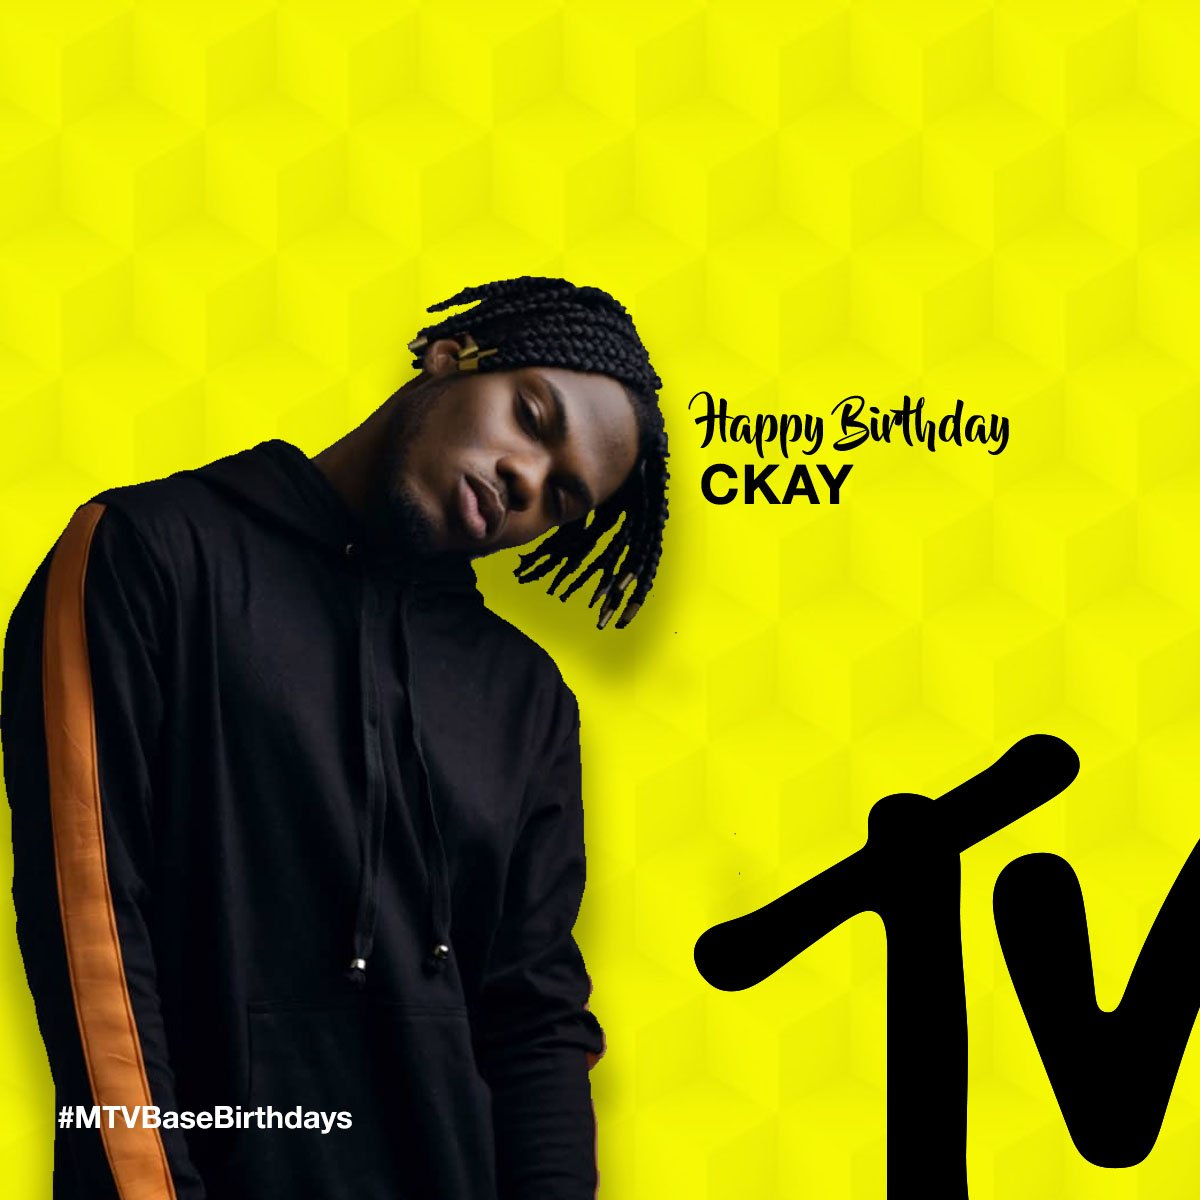 #MTVBaseBirthdays | If you were born today, you also share the same birth date as @ckay_yo ❤ Happy Birthday famooo